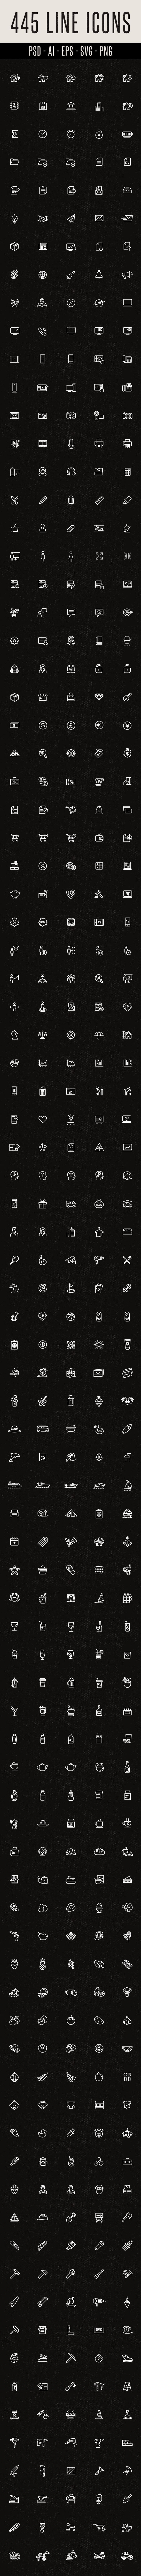 445 Line icon set. The set can be used for: websites, print templates, presentation templates, illustrations etc. All Icons are based on shapes (100% vector) and they are fully layered, easy to change color and adjustable to any size. Available in: EPS, AI, PSD, SVG, PNG DOWNLOAD https://gum.co/PdhRE